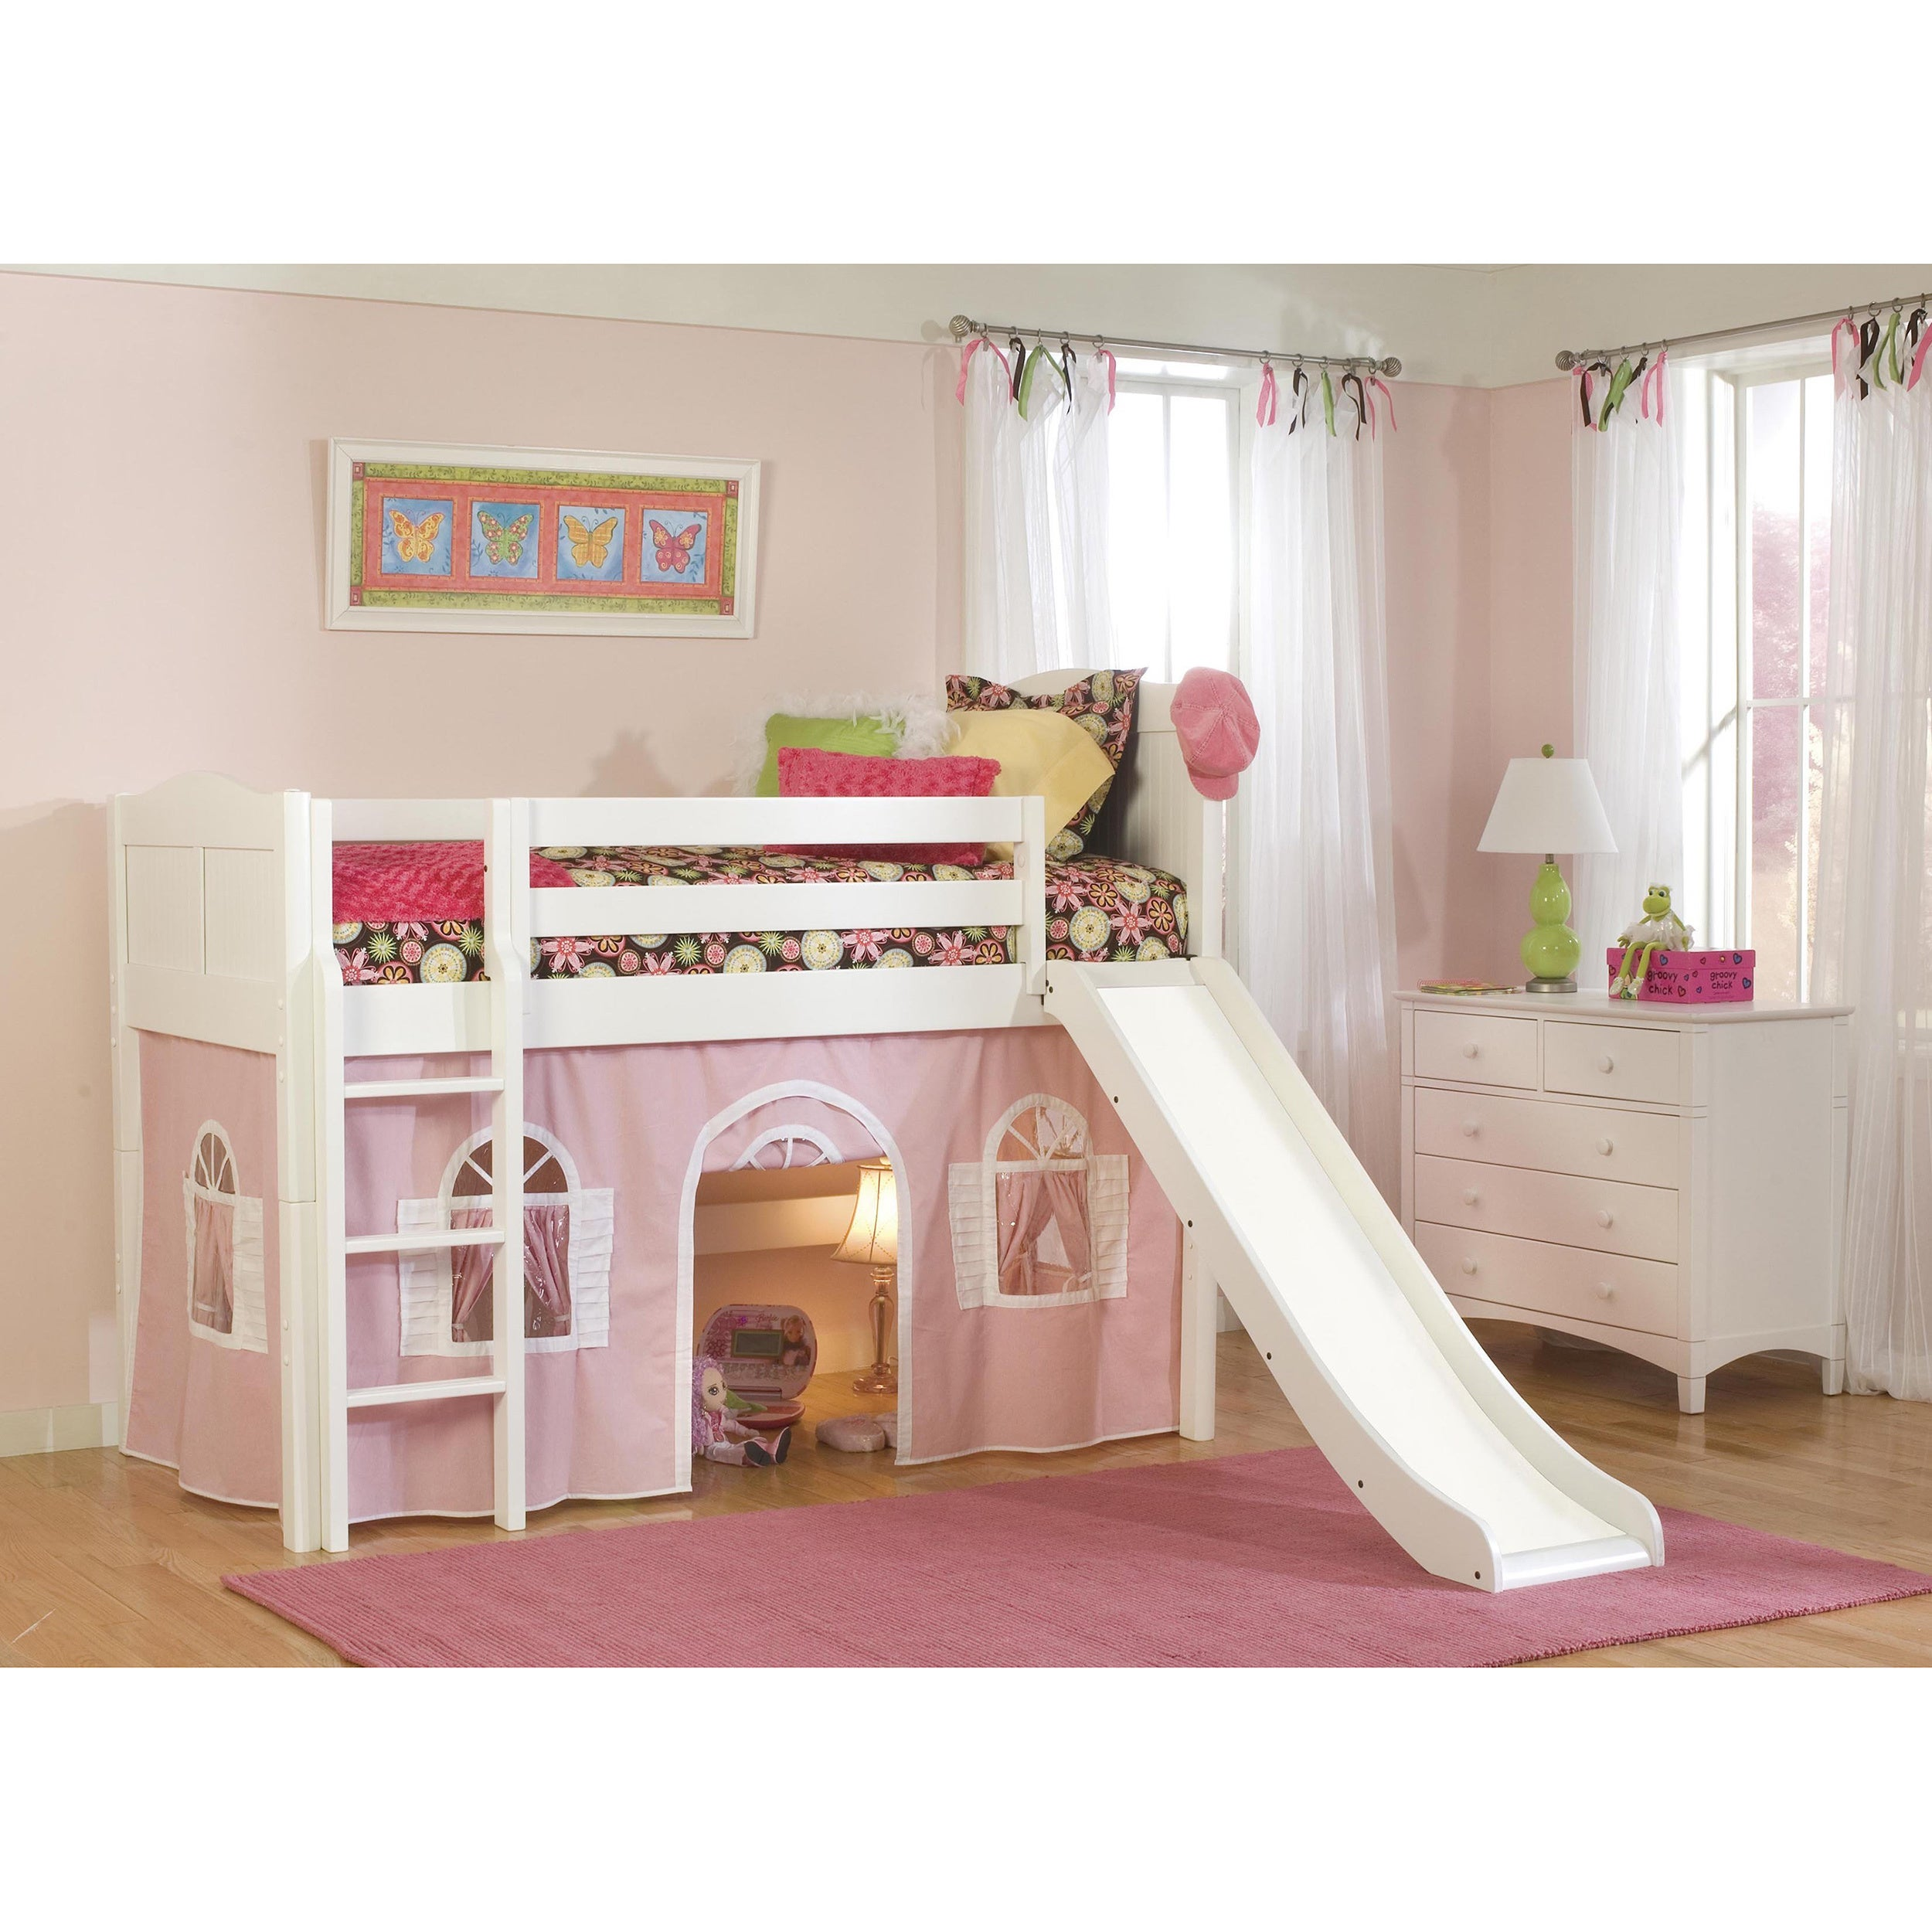 Bolton White Low-Loft Twin Playhouse Bed with Slide and L...